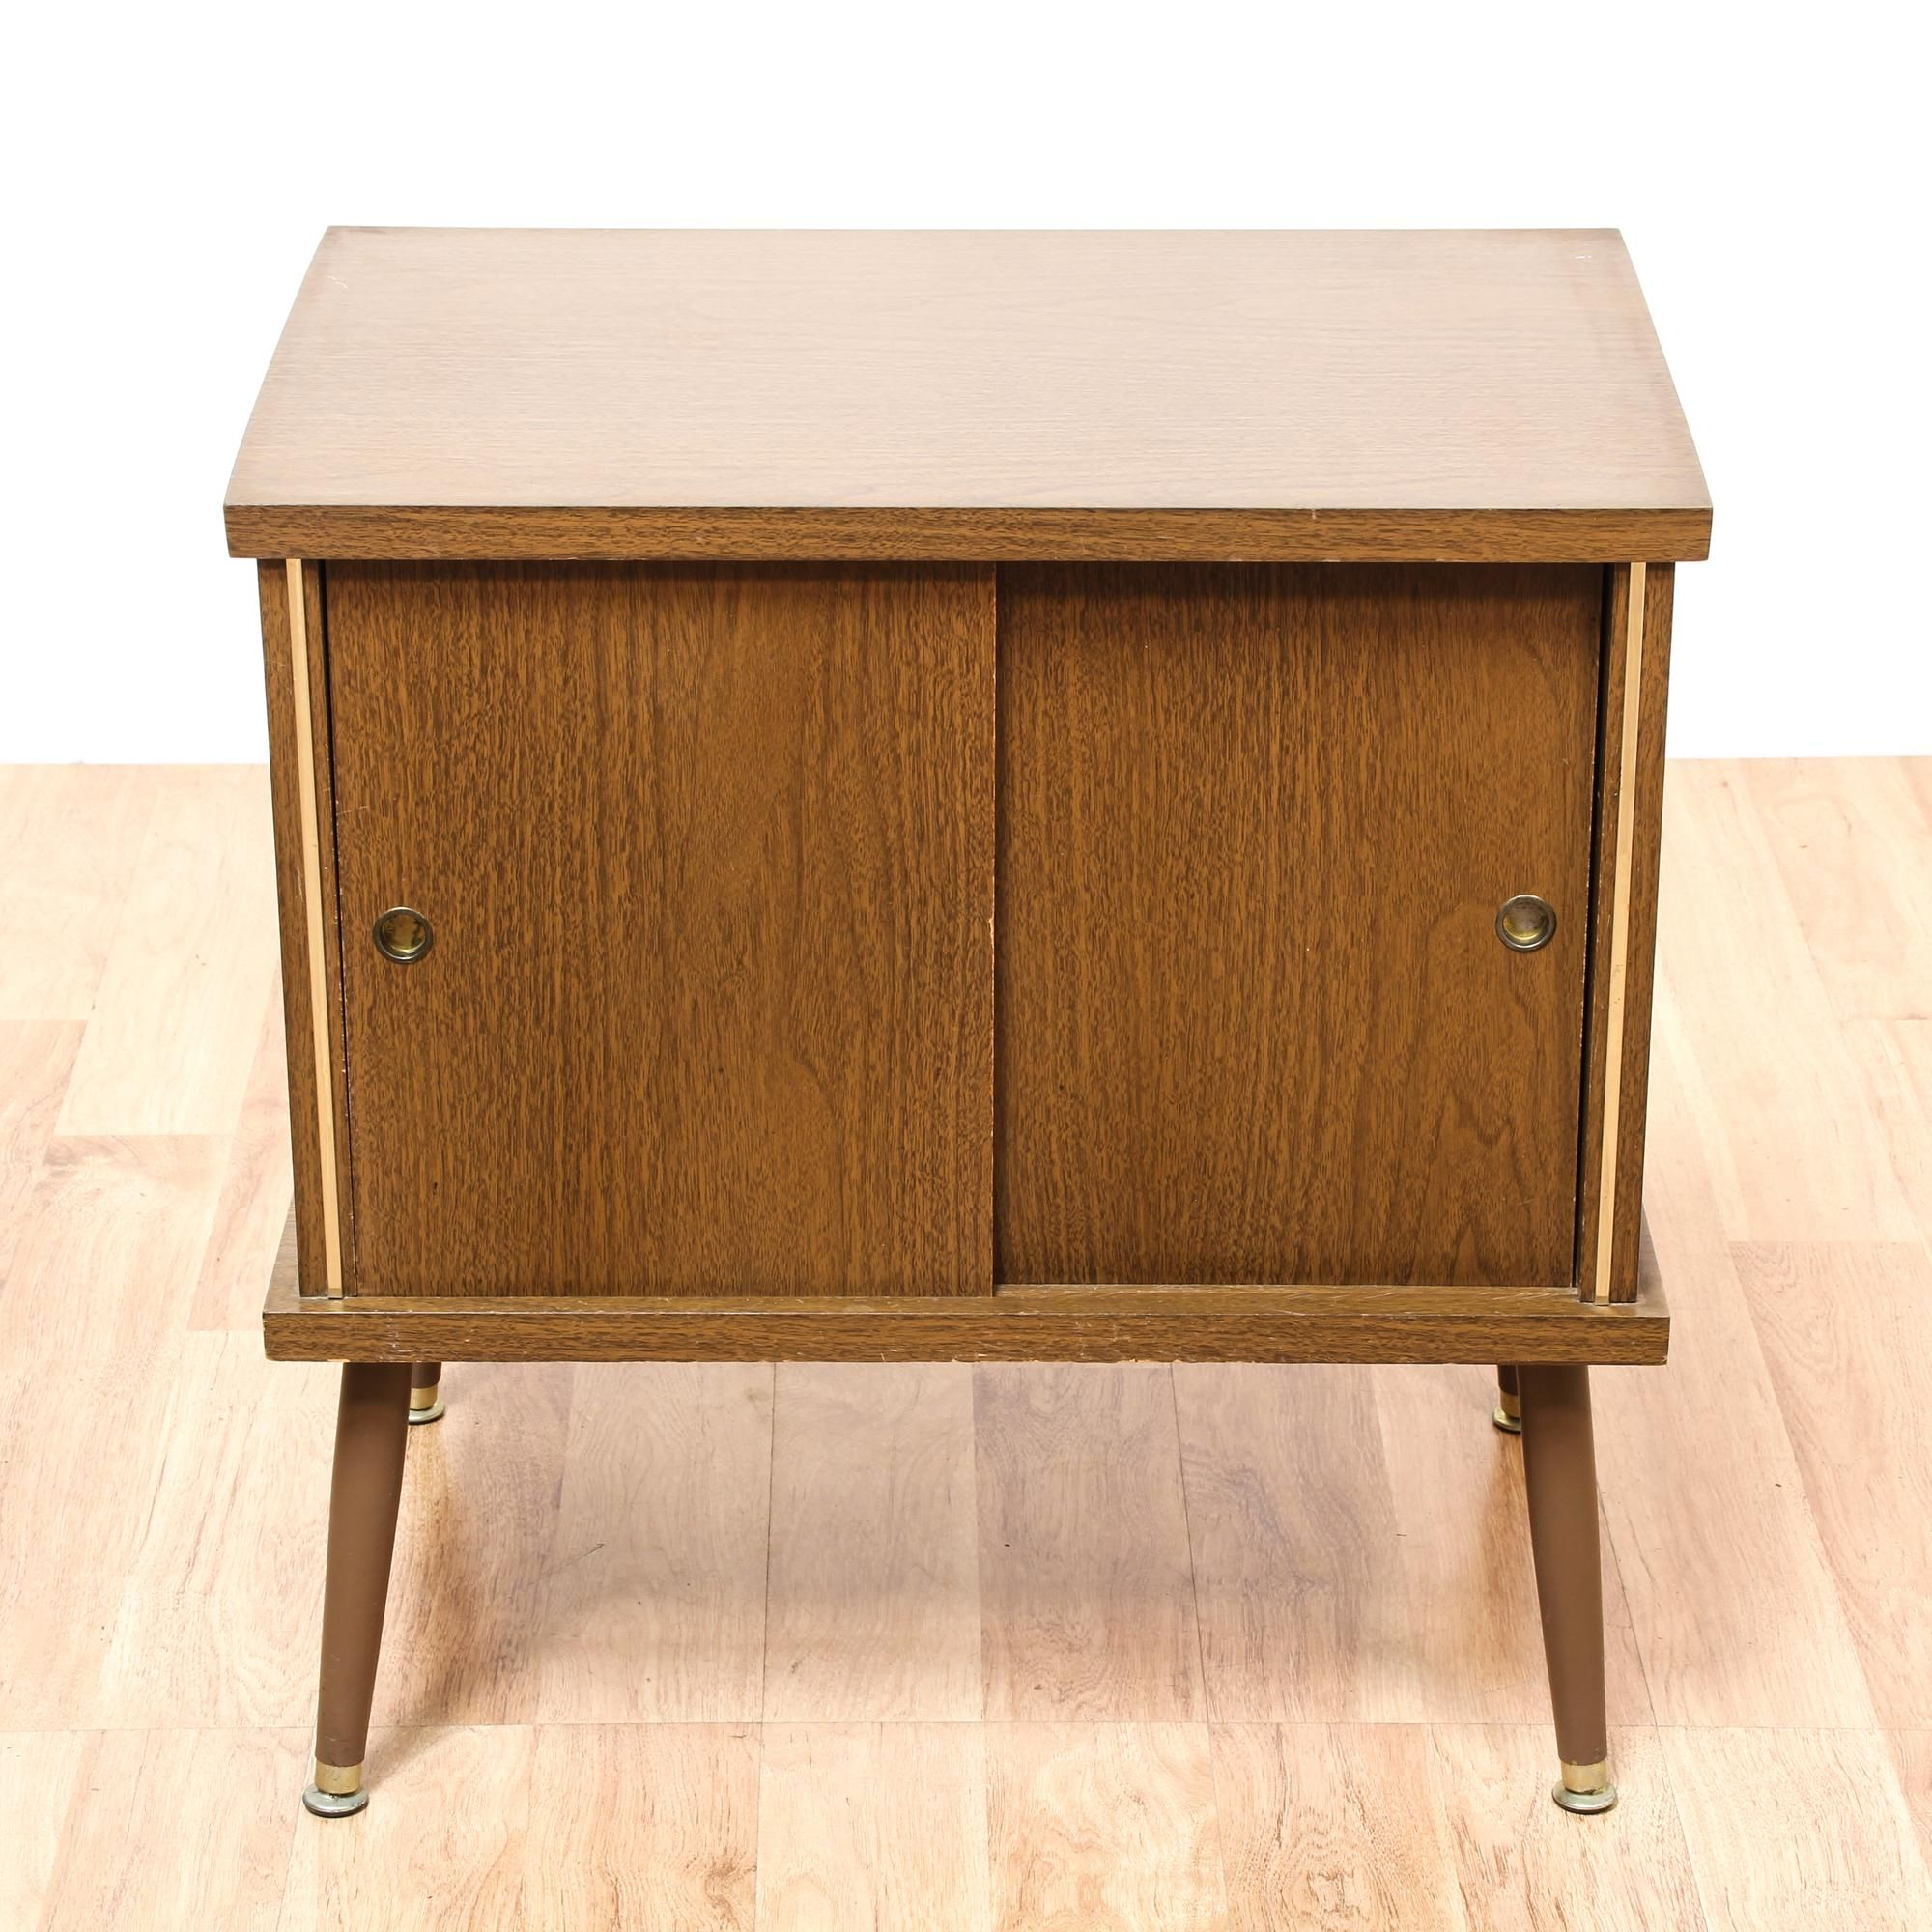 probably terrific awesome end table with storage door ture this featured solid wood glossy walnut finish mid century modern side has sliding cabinet sleek tapered legs kirklands